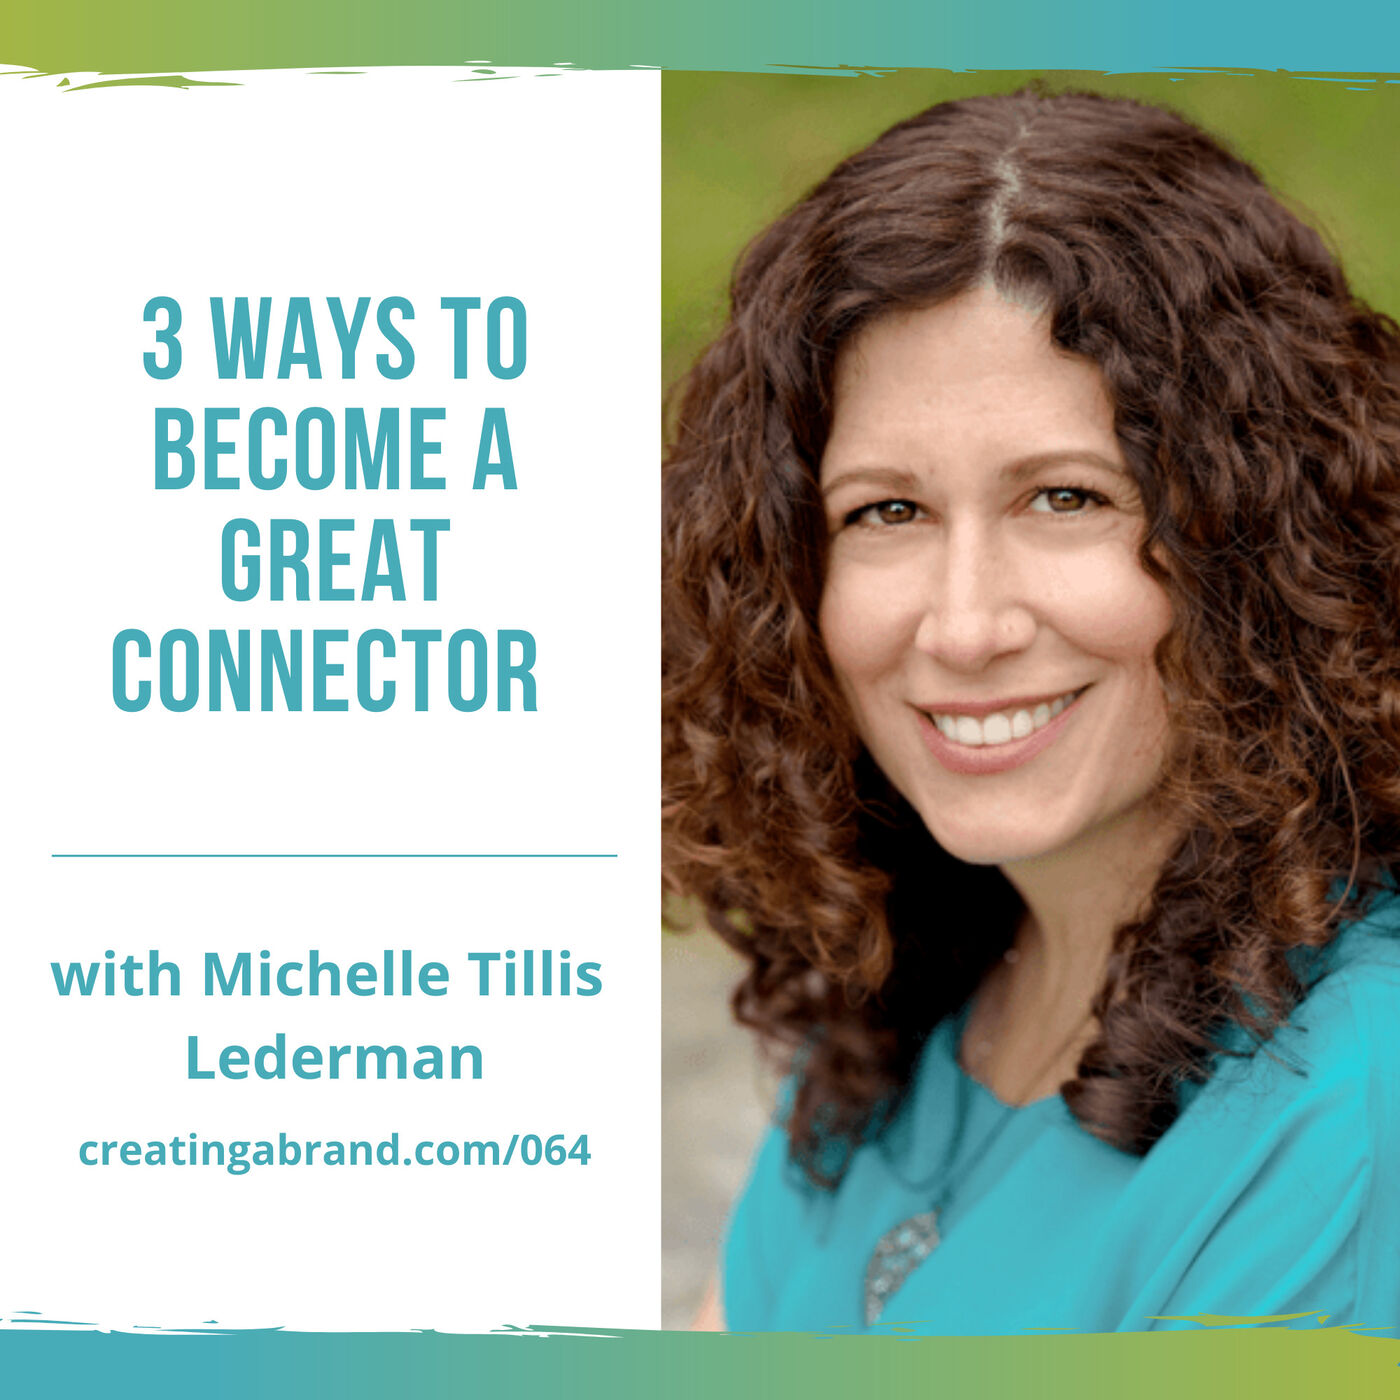 3 Ways to Become a Great Connector with Michelle Tillis Lederman